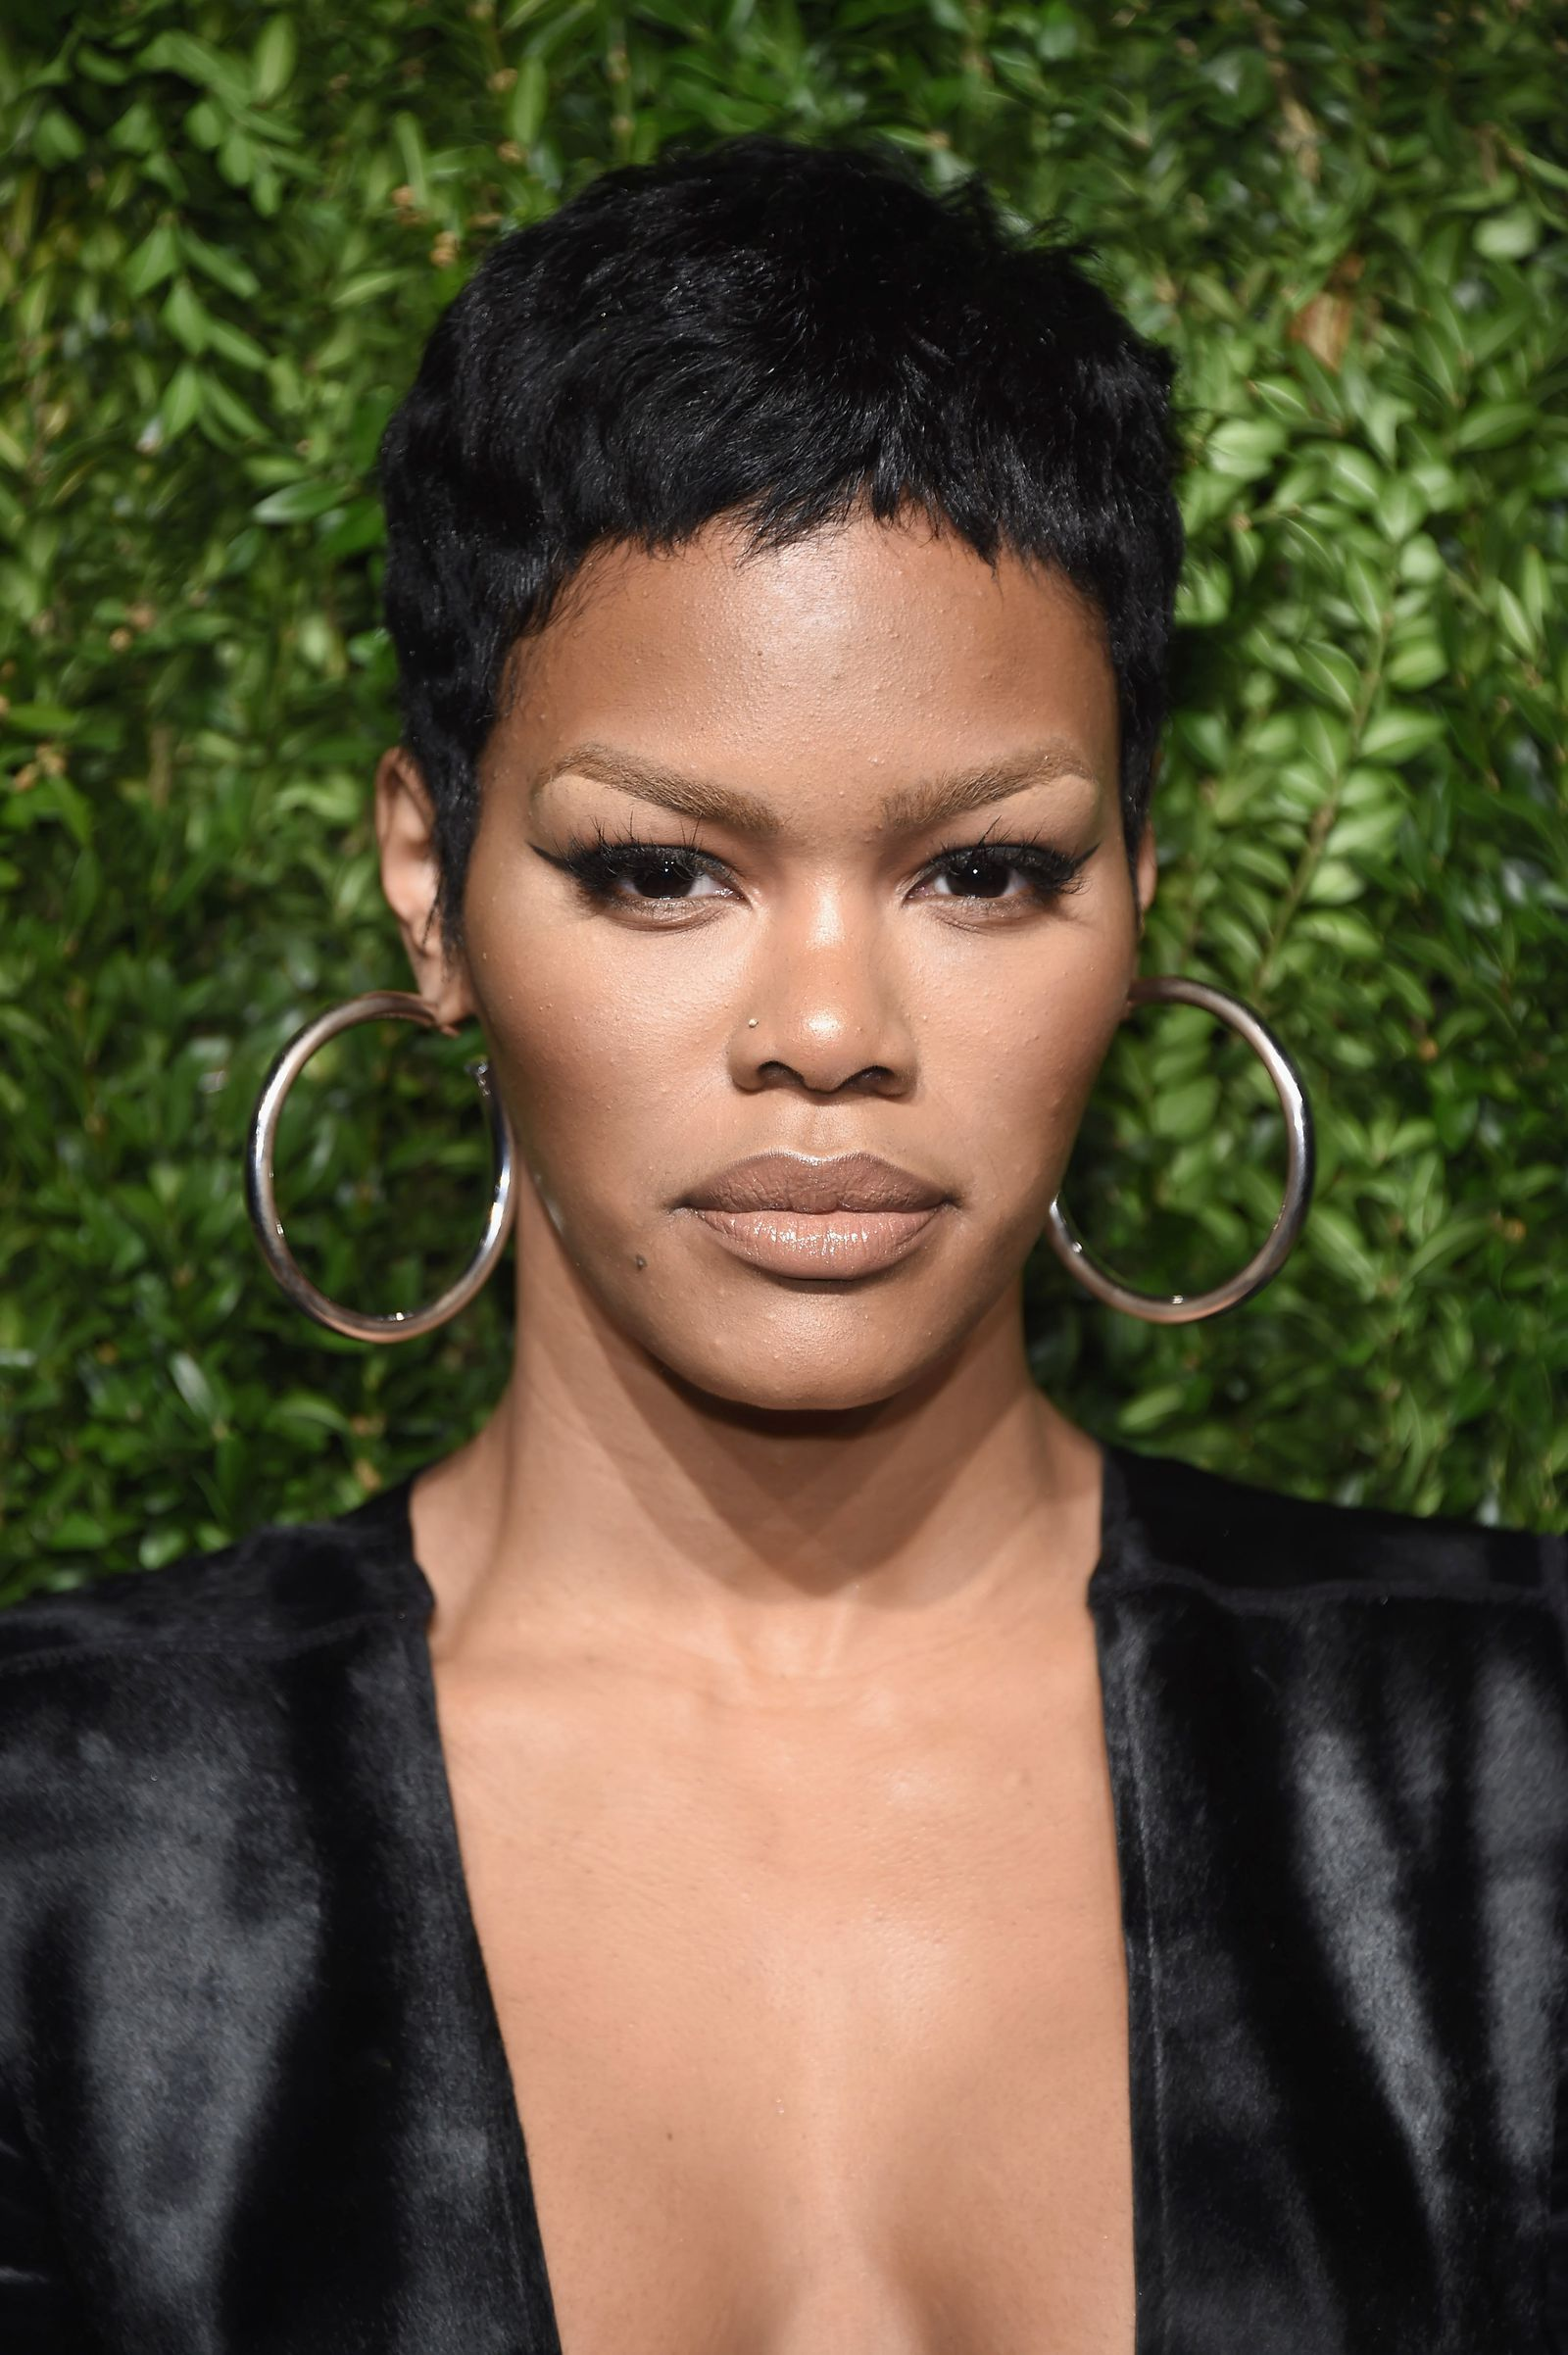 44 Short Hairstyles To Try Now Celebrity Short Hair Short Hair Styles Short Pixie Haircuts